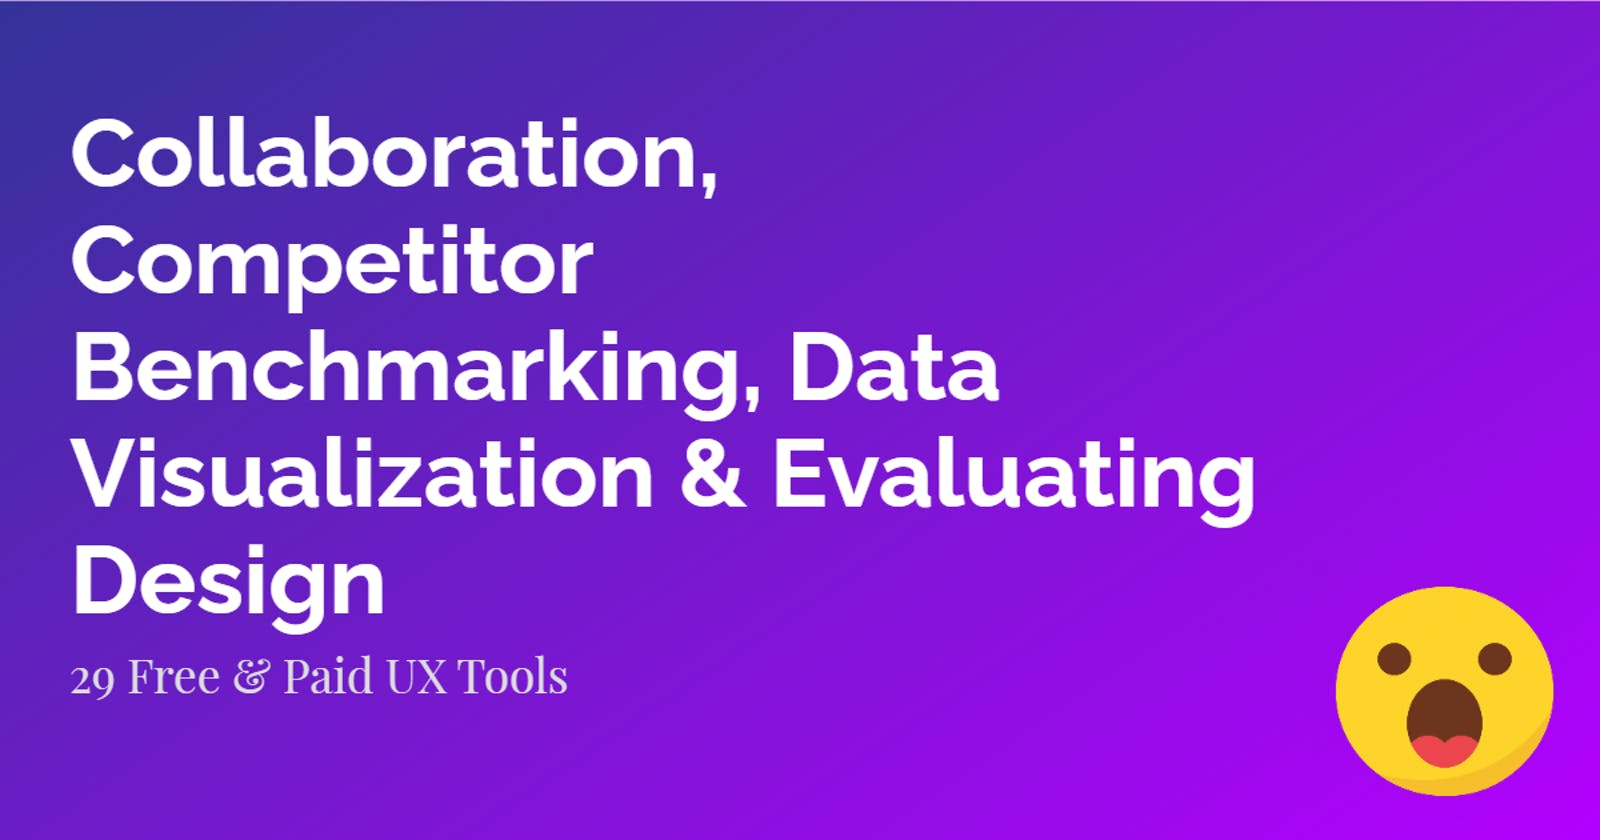 Collaboration, Competitor Benchmarking, Data Visualization, Evaluating Design Tools | UX